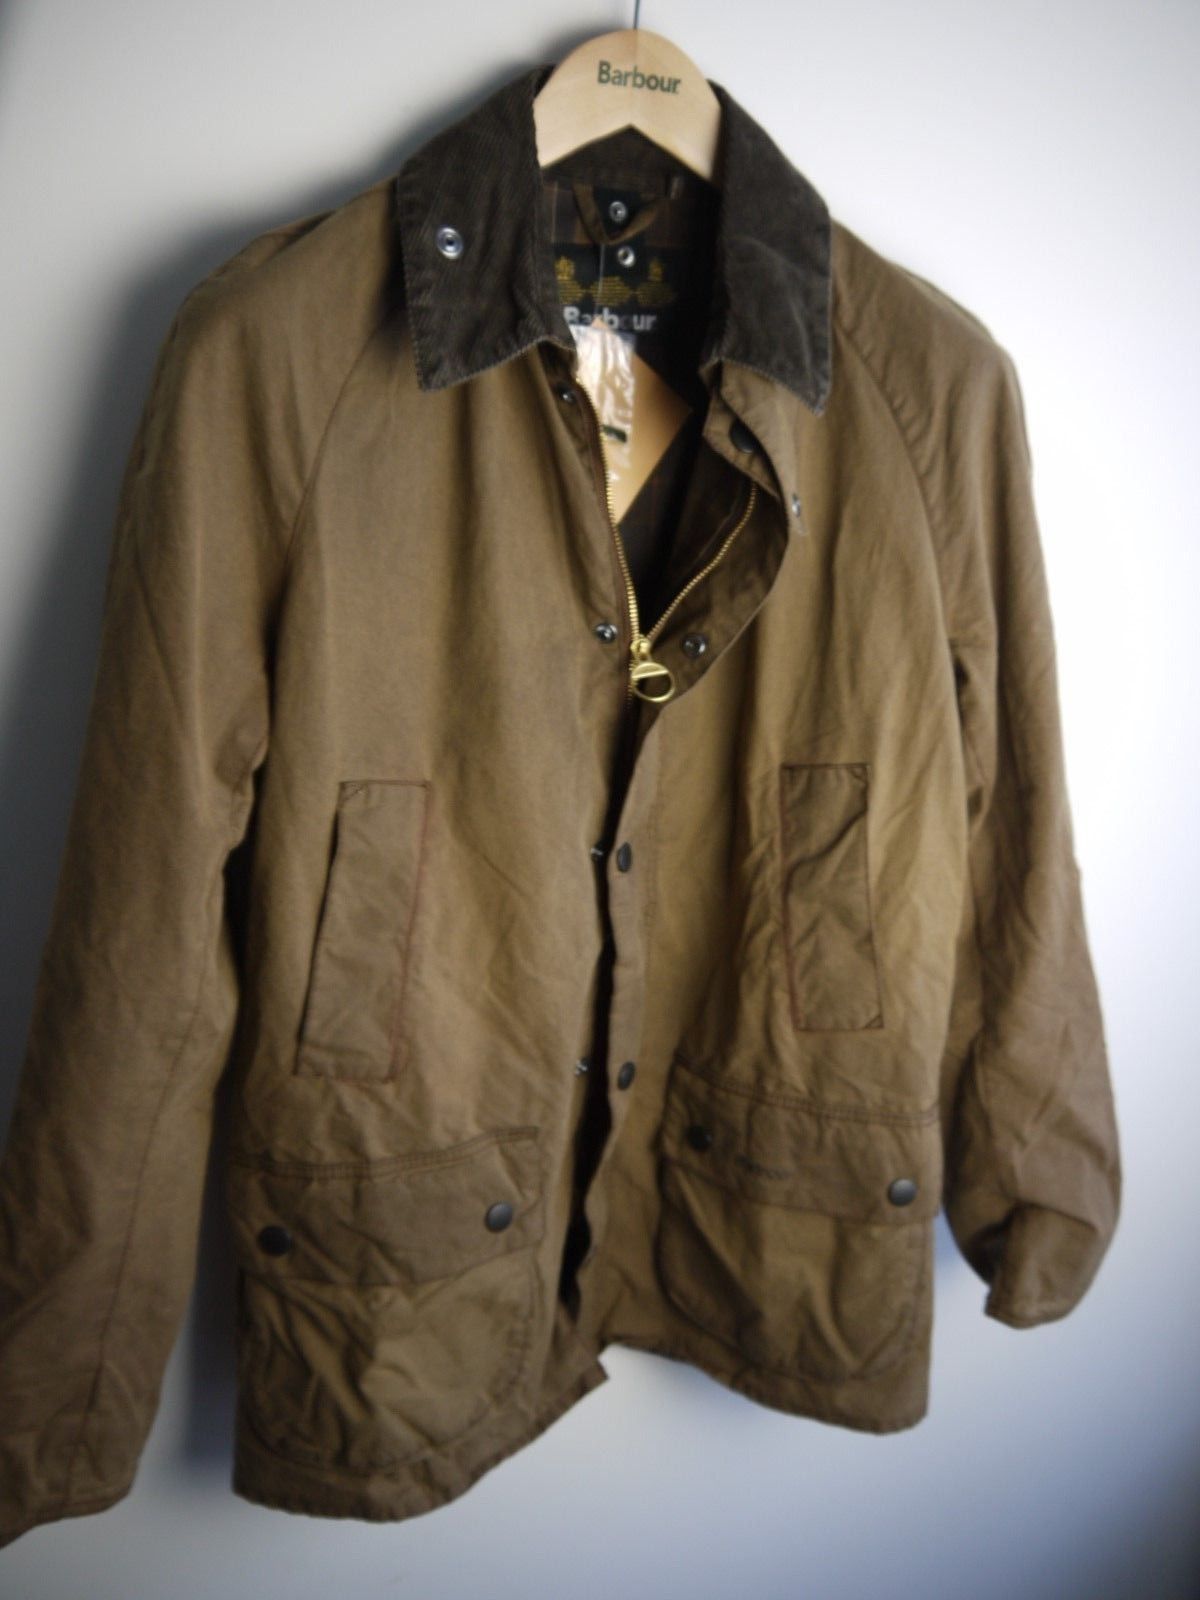 Barbour jacke 6xl